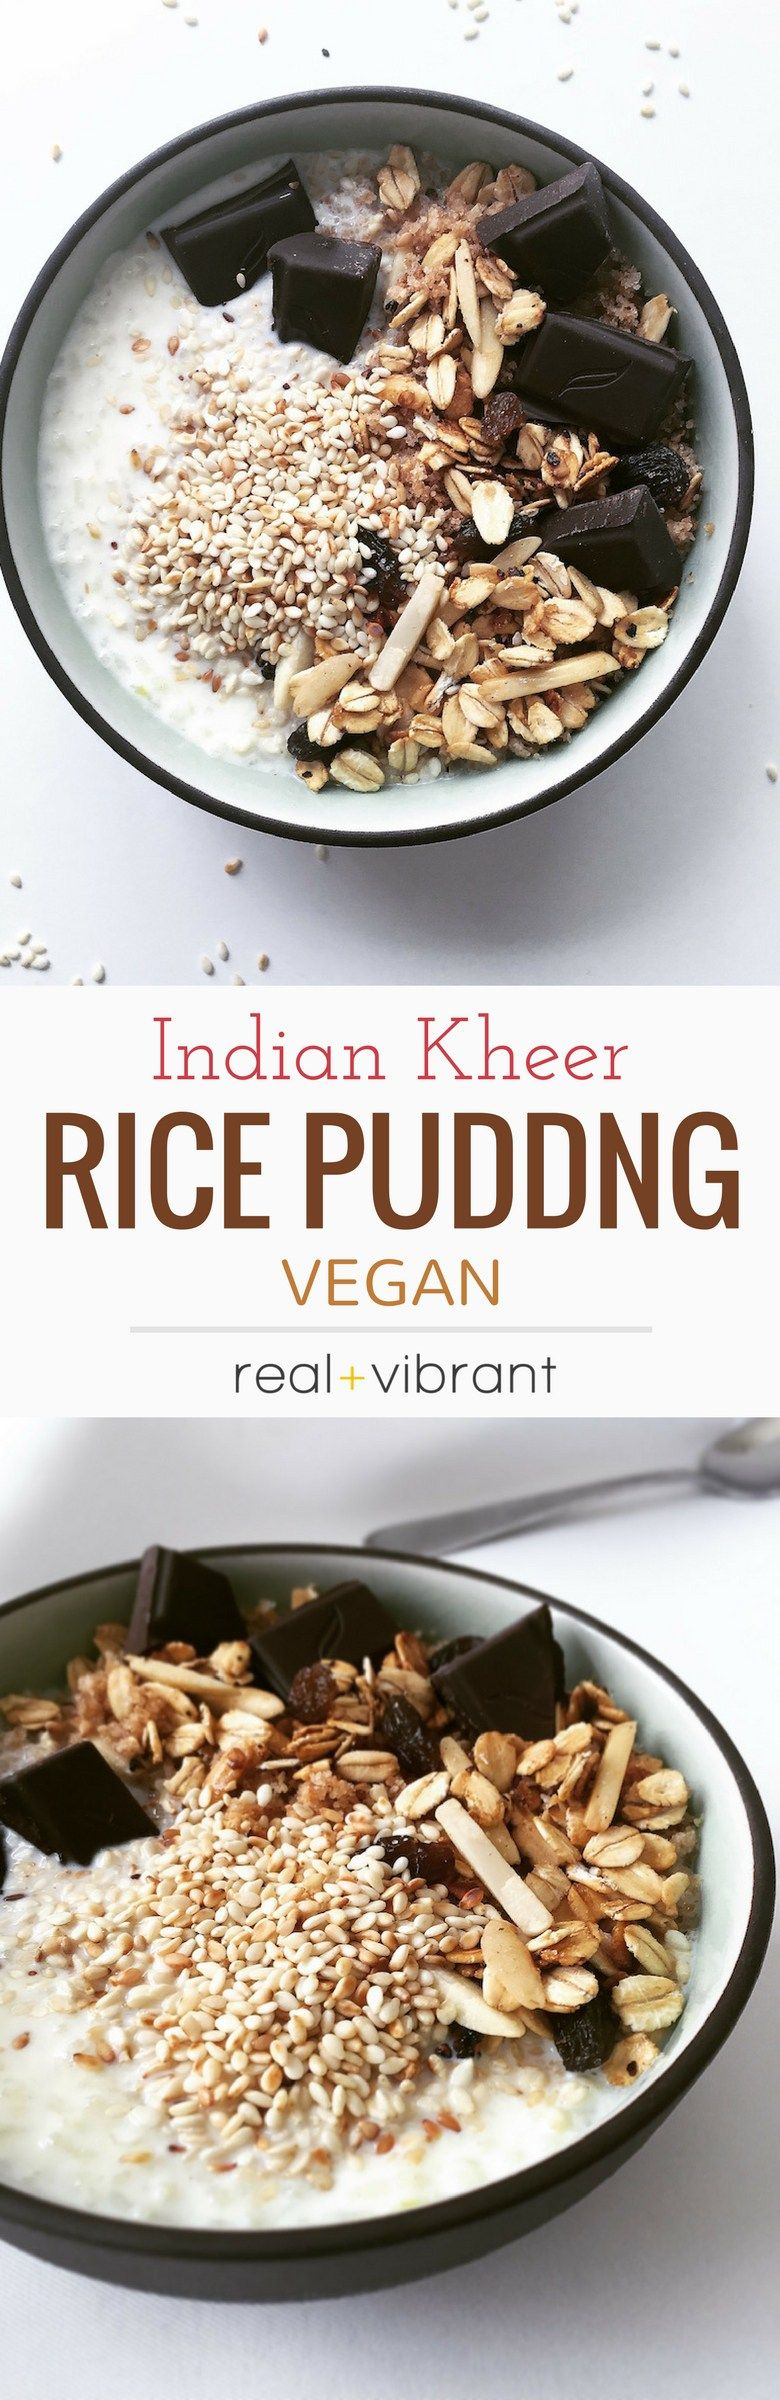 Indian rice pudding recipe how to make kheer real